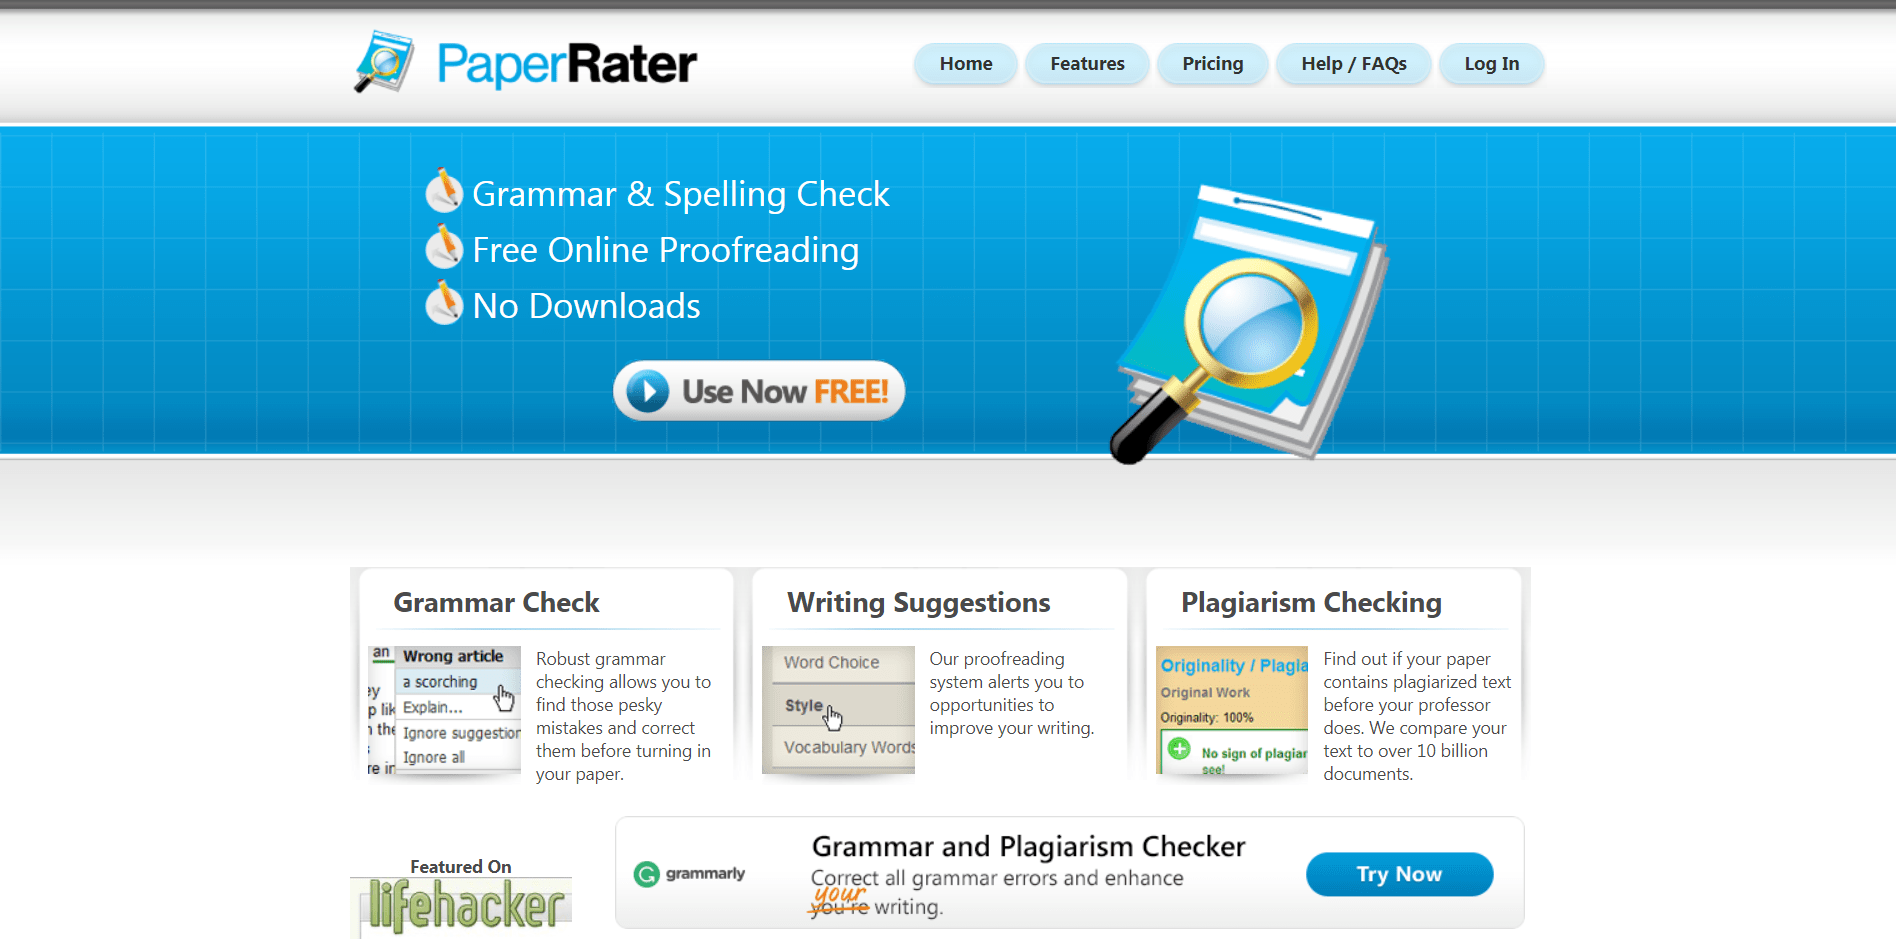 paperrater